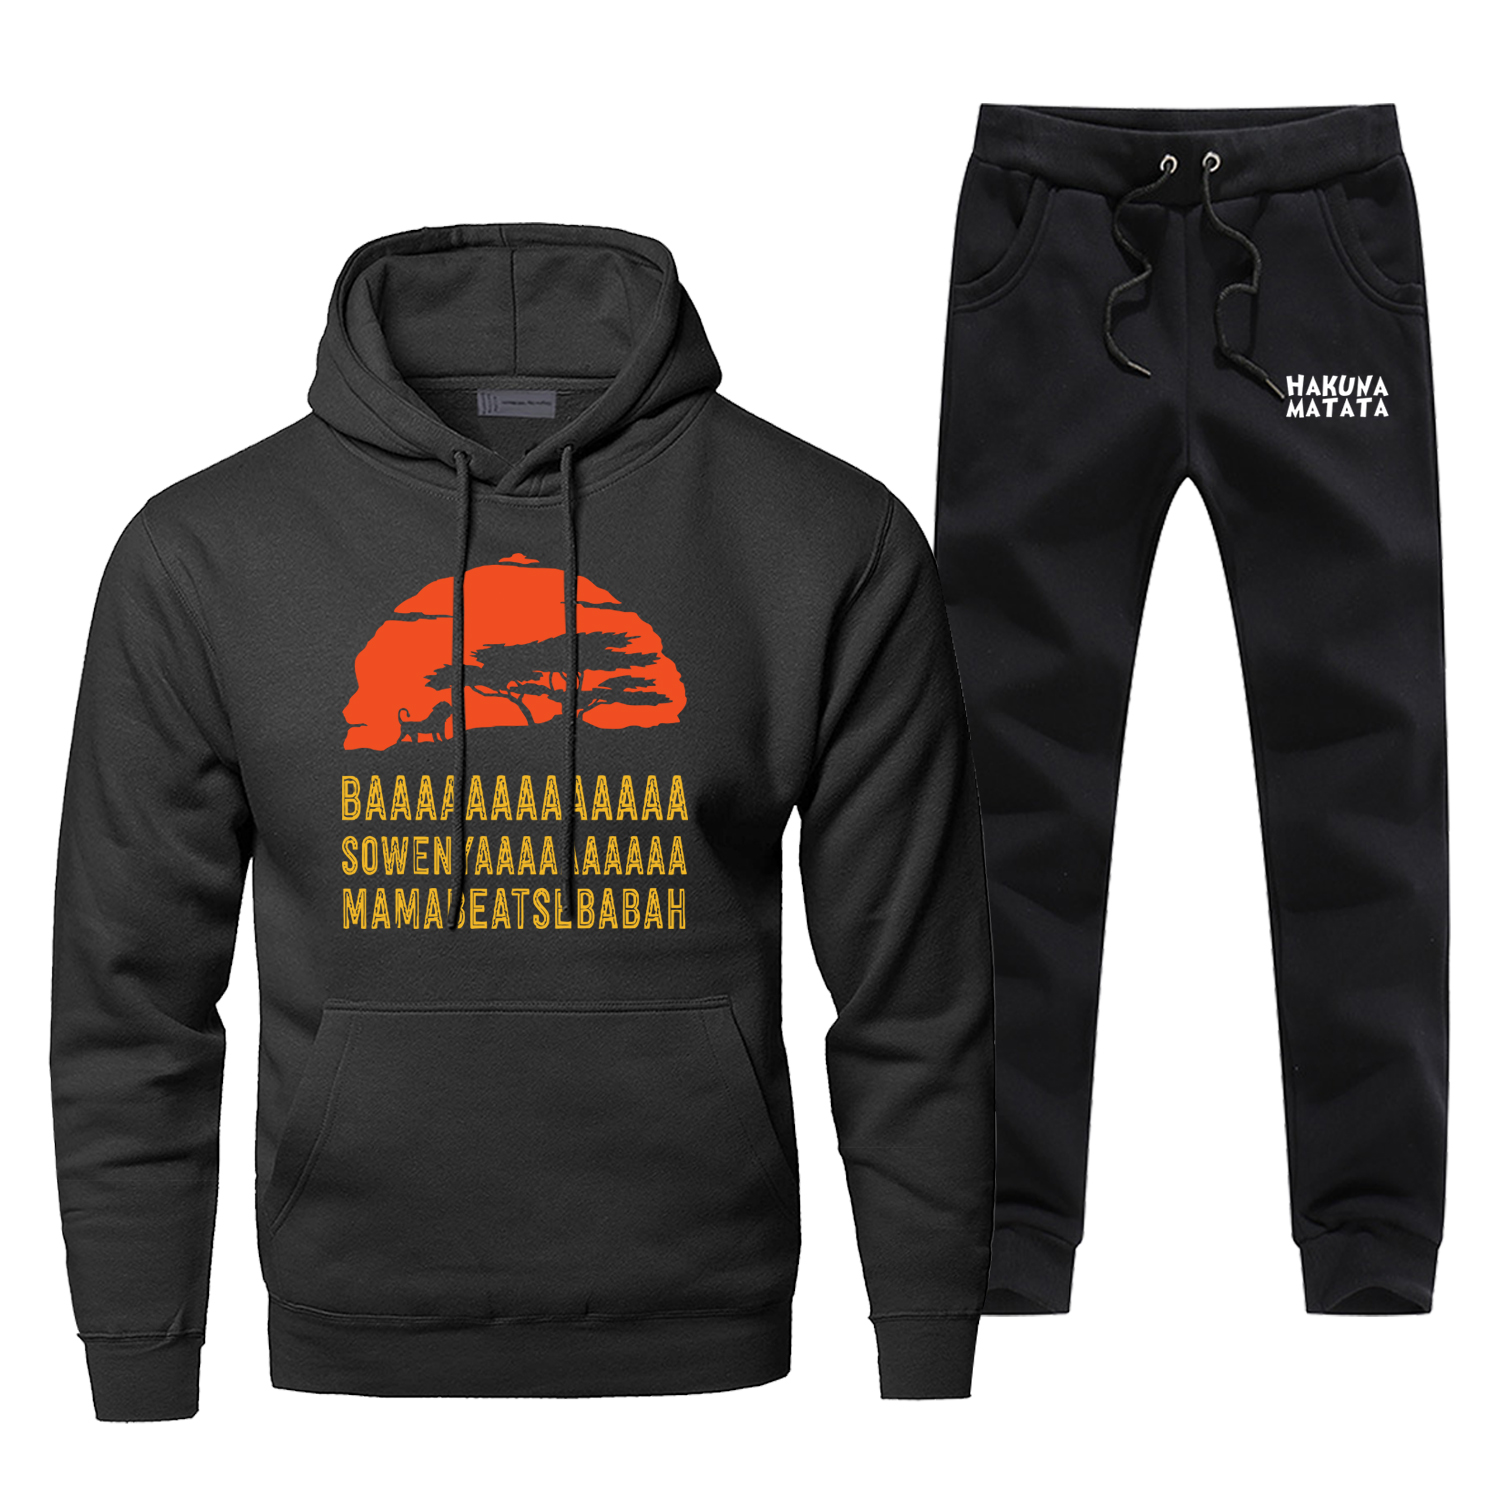 Jungle African Lion King Sunset Sweatshirt Hoodies Pants Sets Men Casual Hip Hop Sportswear Winter Fleece Harajuku Streetwear